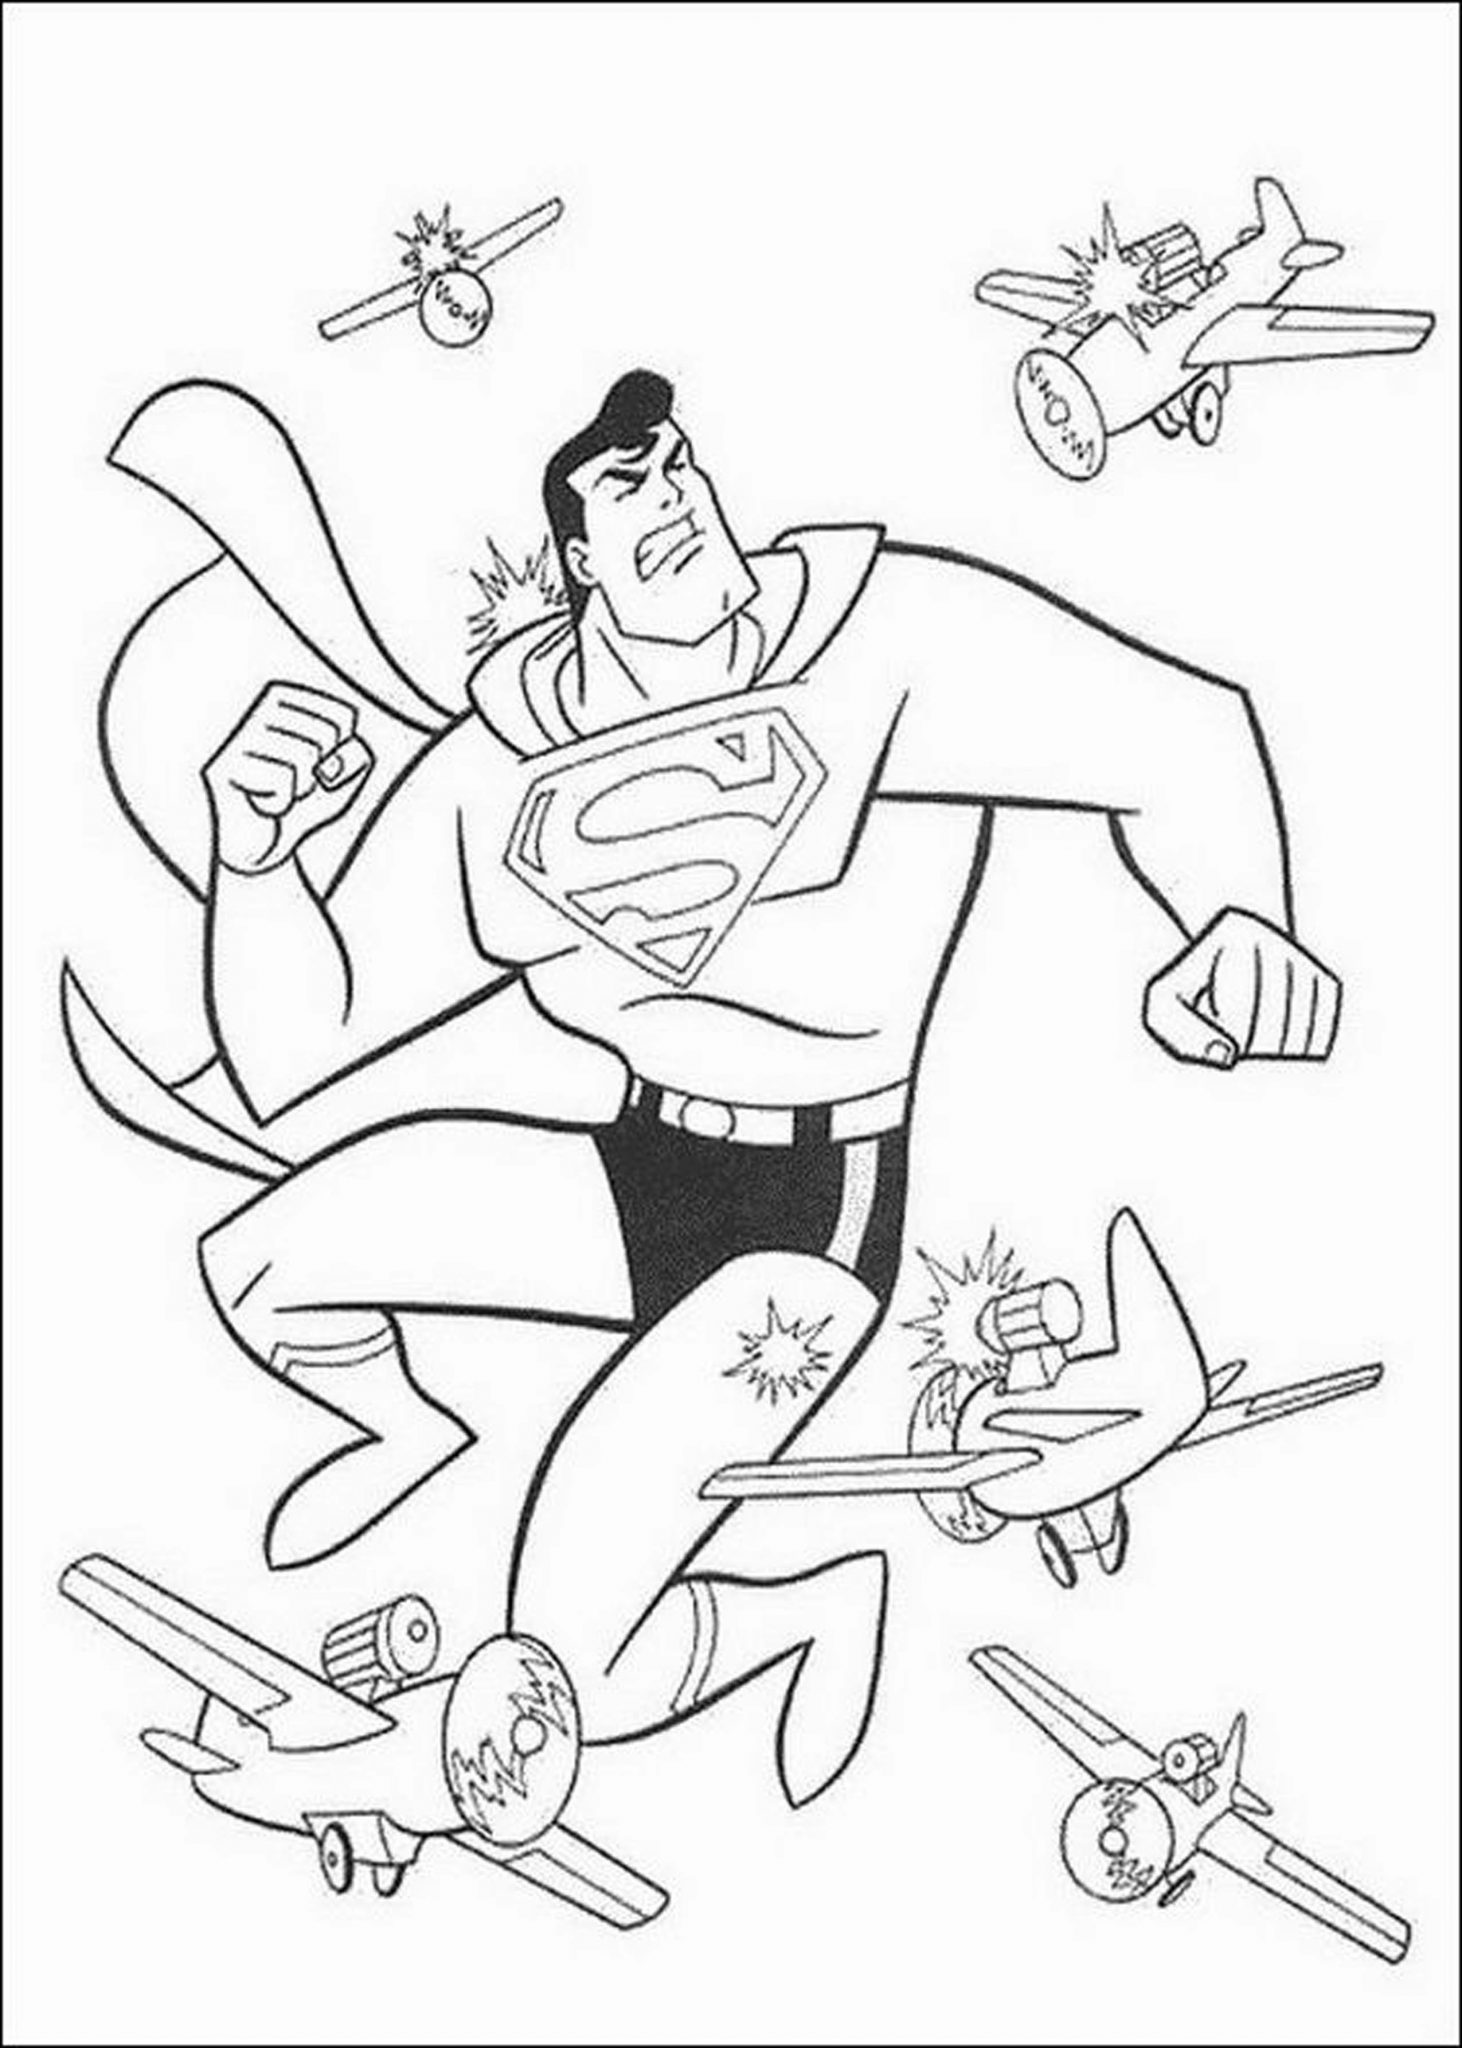 coloring pages of boy coloring pages for boys training shopping for children coloring pages of boy